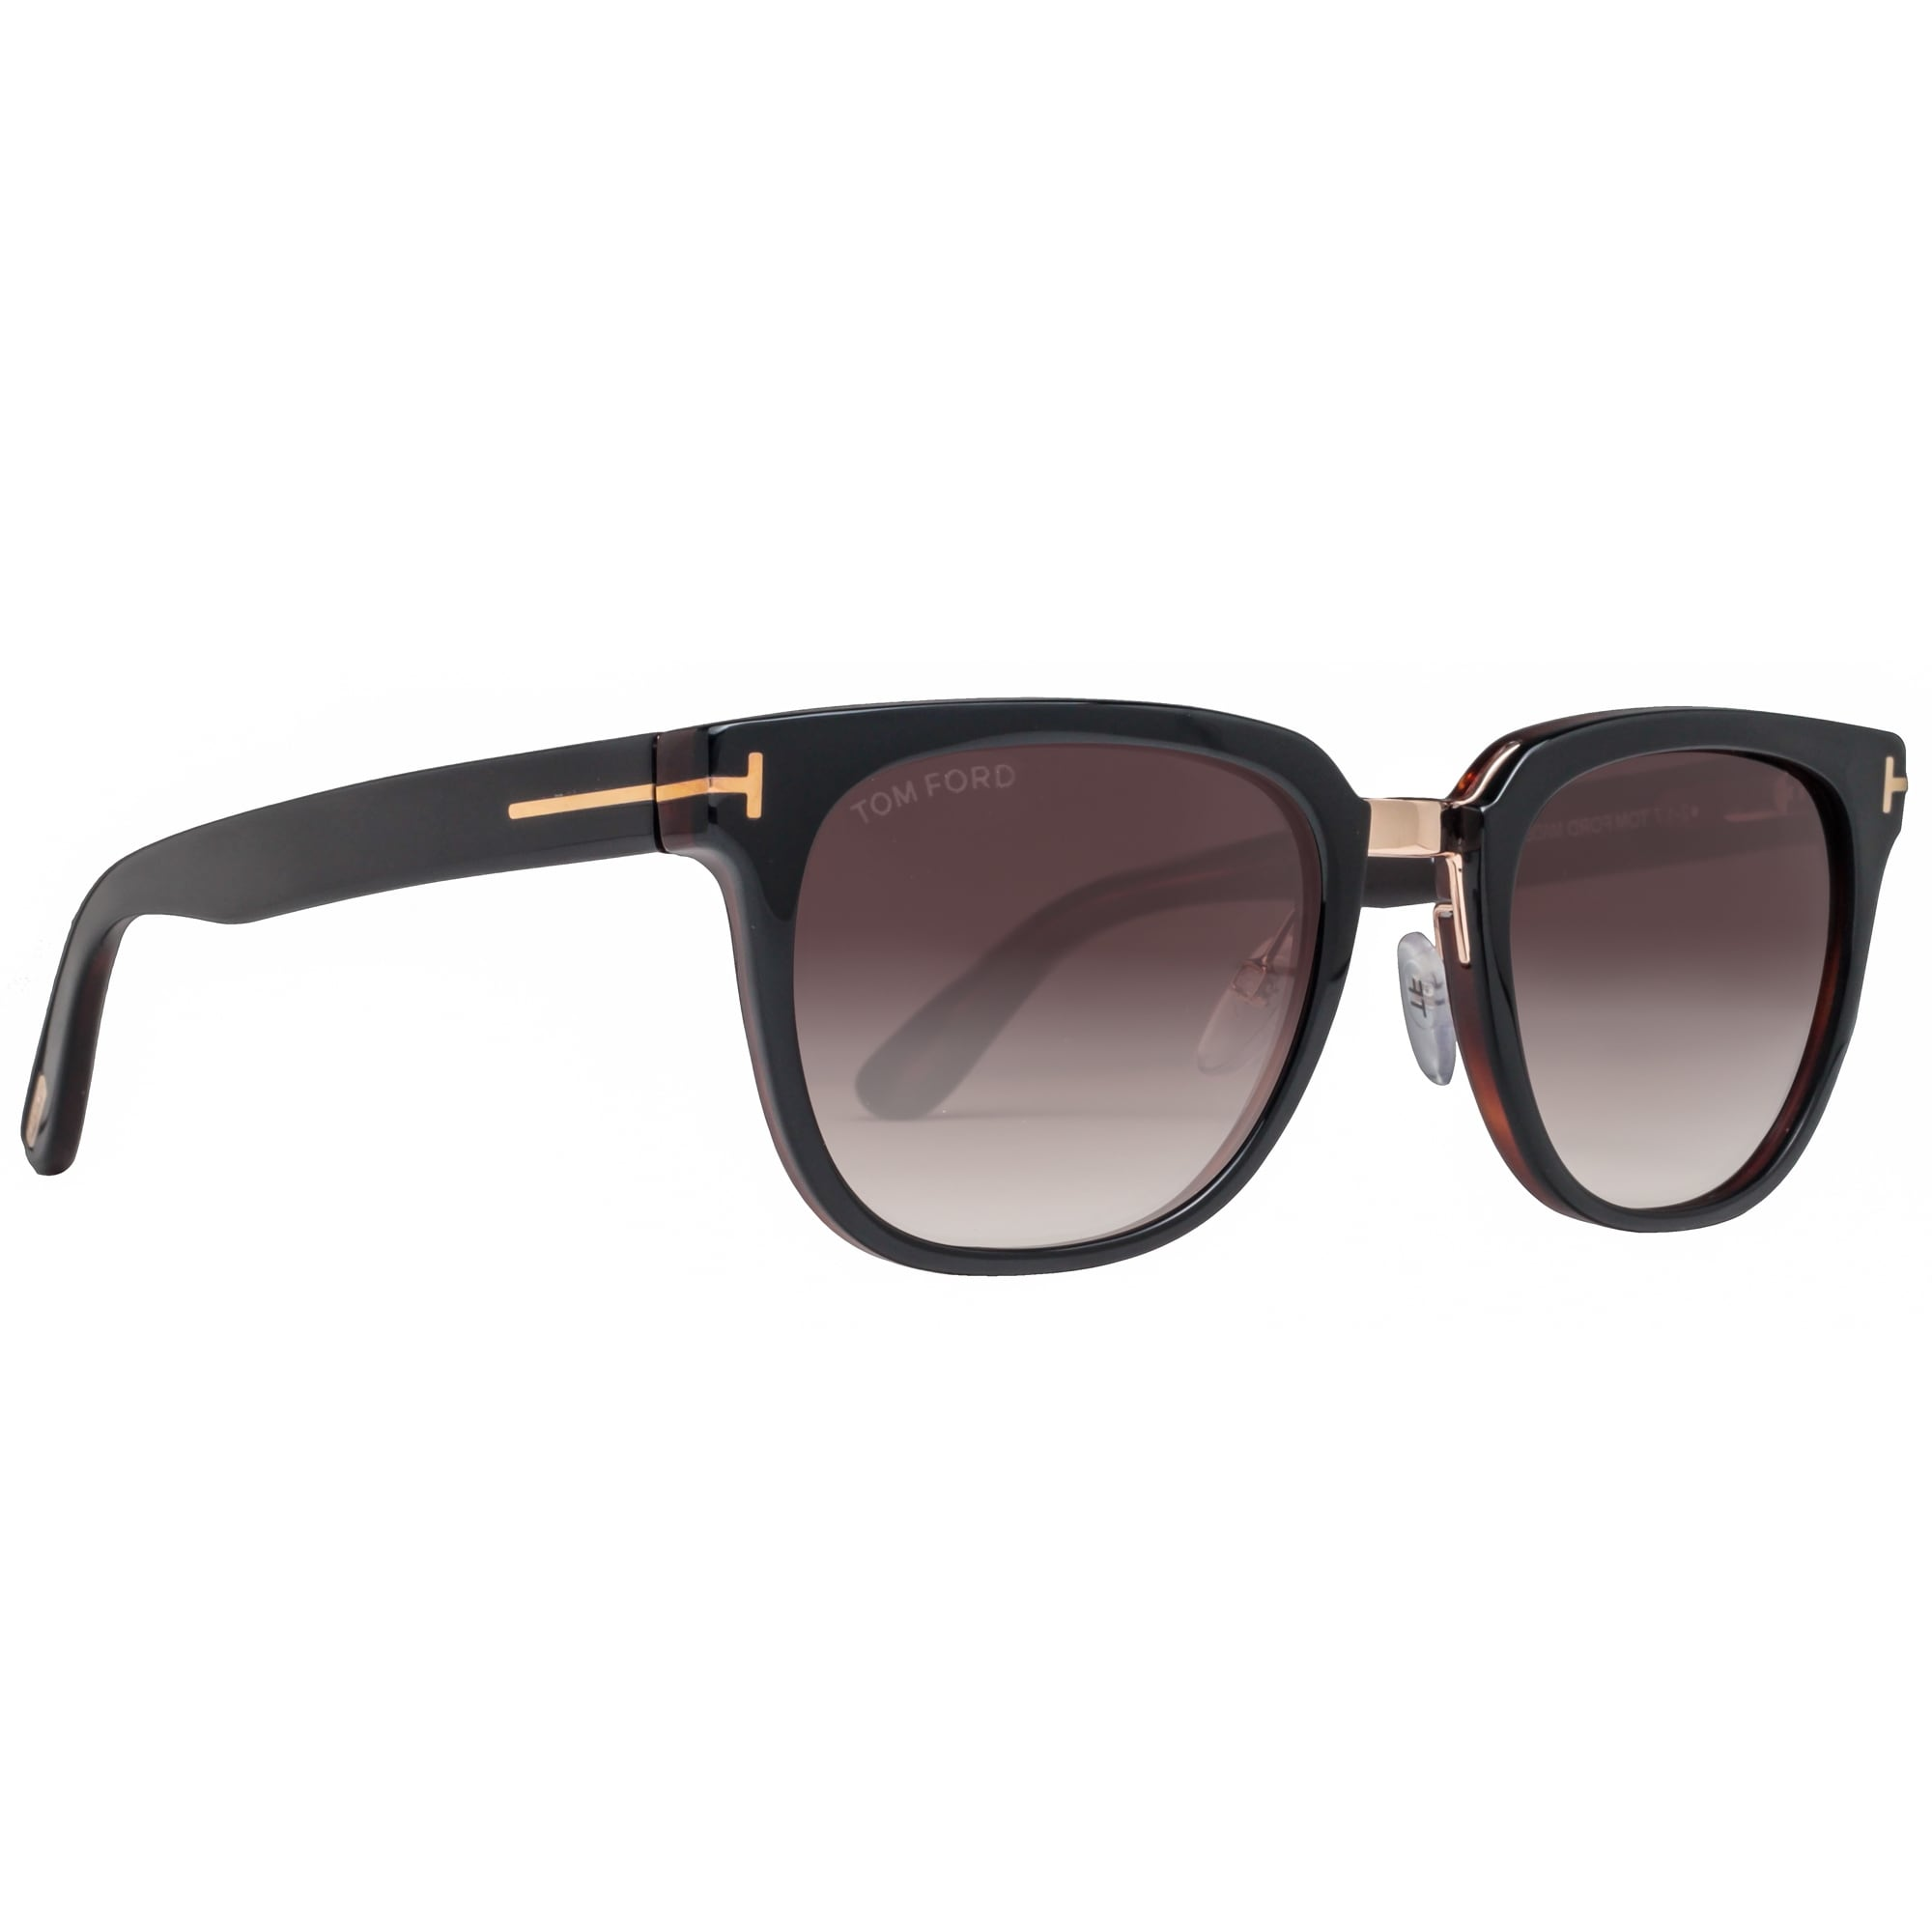 ed22fea9900 Shop Tom Ford Rock TF 290 01F 53mm Havana Brown Gradient Unisex Square  Sunglasses - dark havana brown - 53mm-20mm-145mm - Free Shipping Today -  Overstock - ...